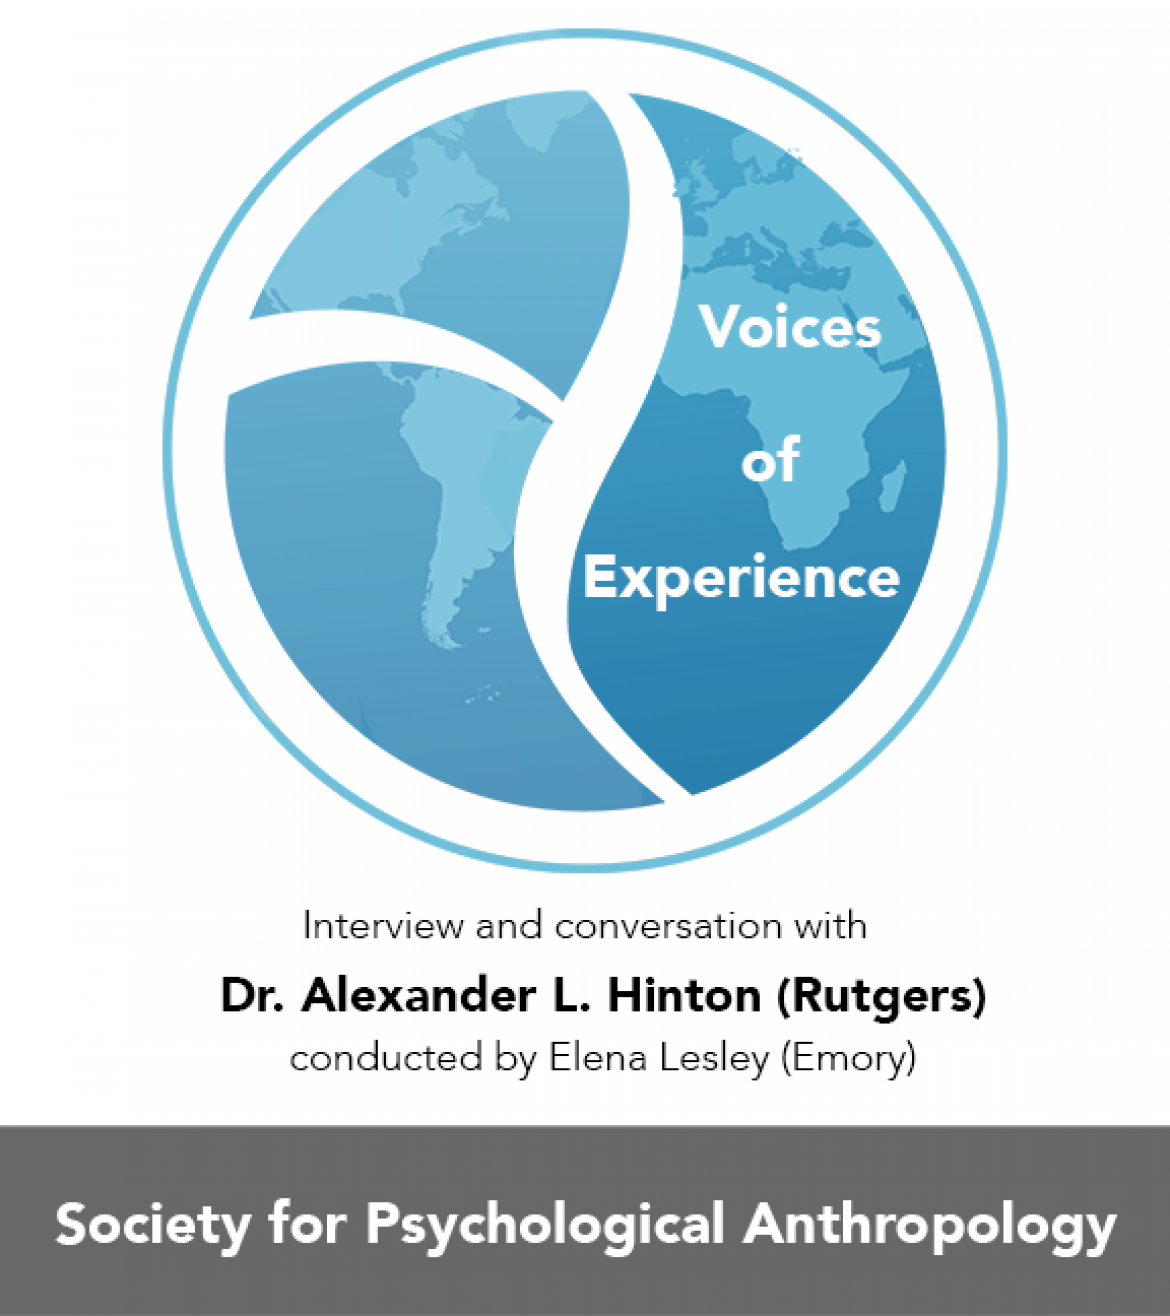 Voices of Experience: Dr. Alexander Hinton (Rutgers)